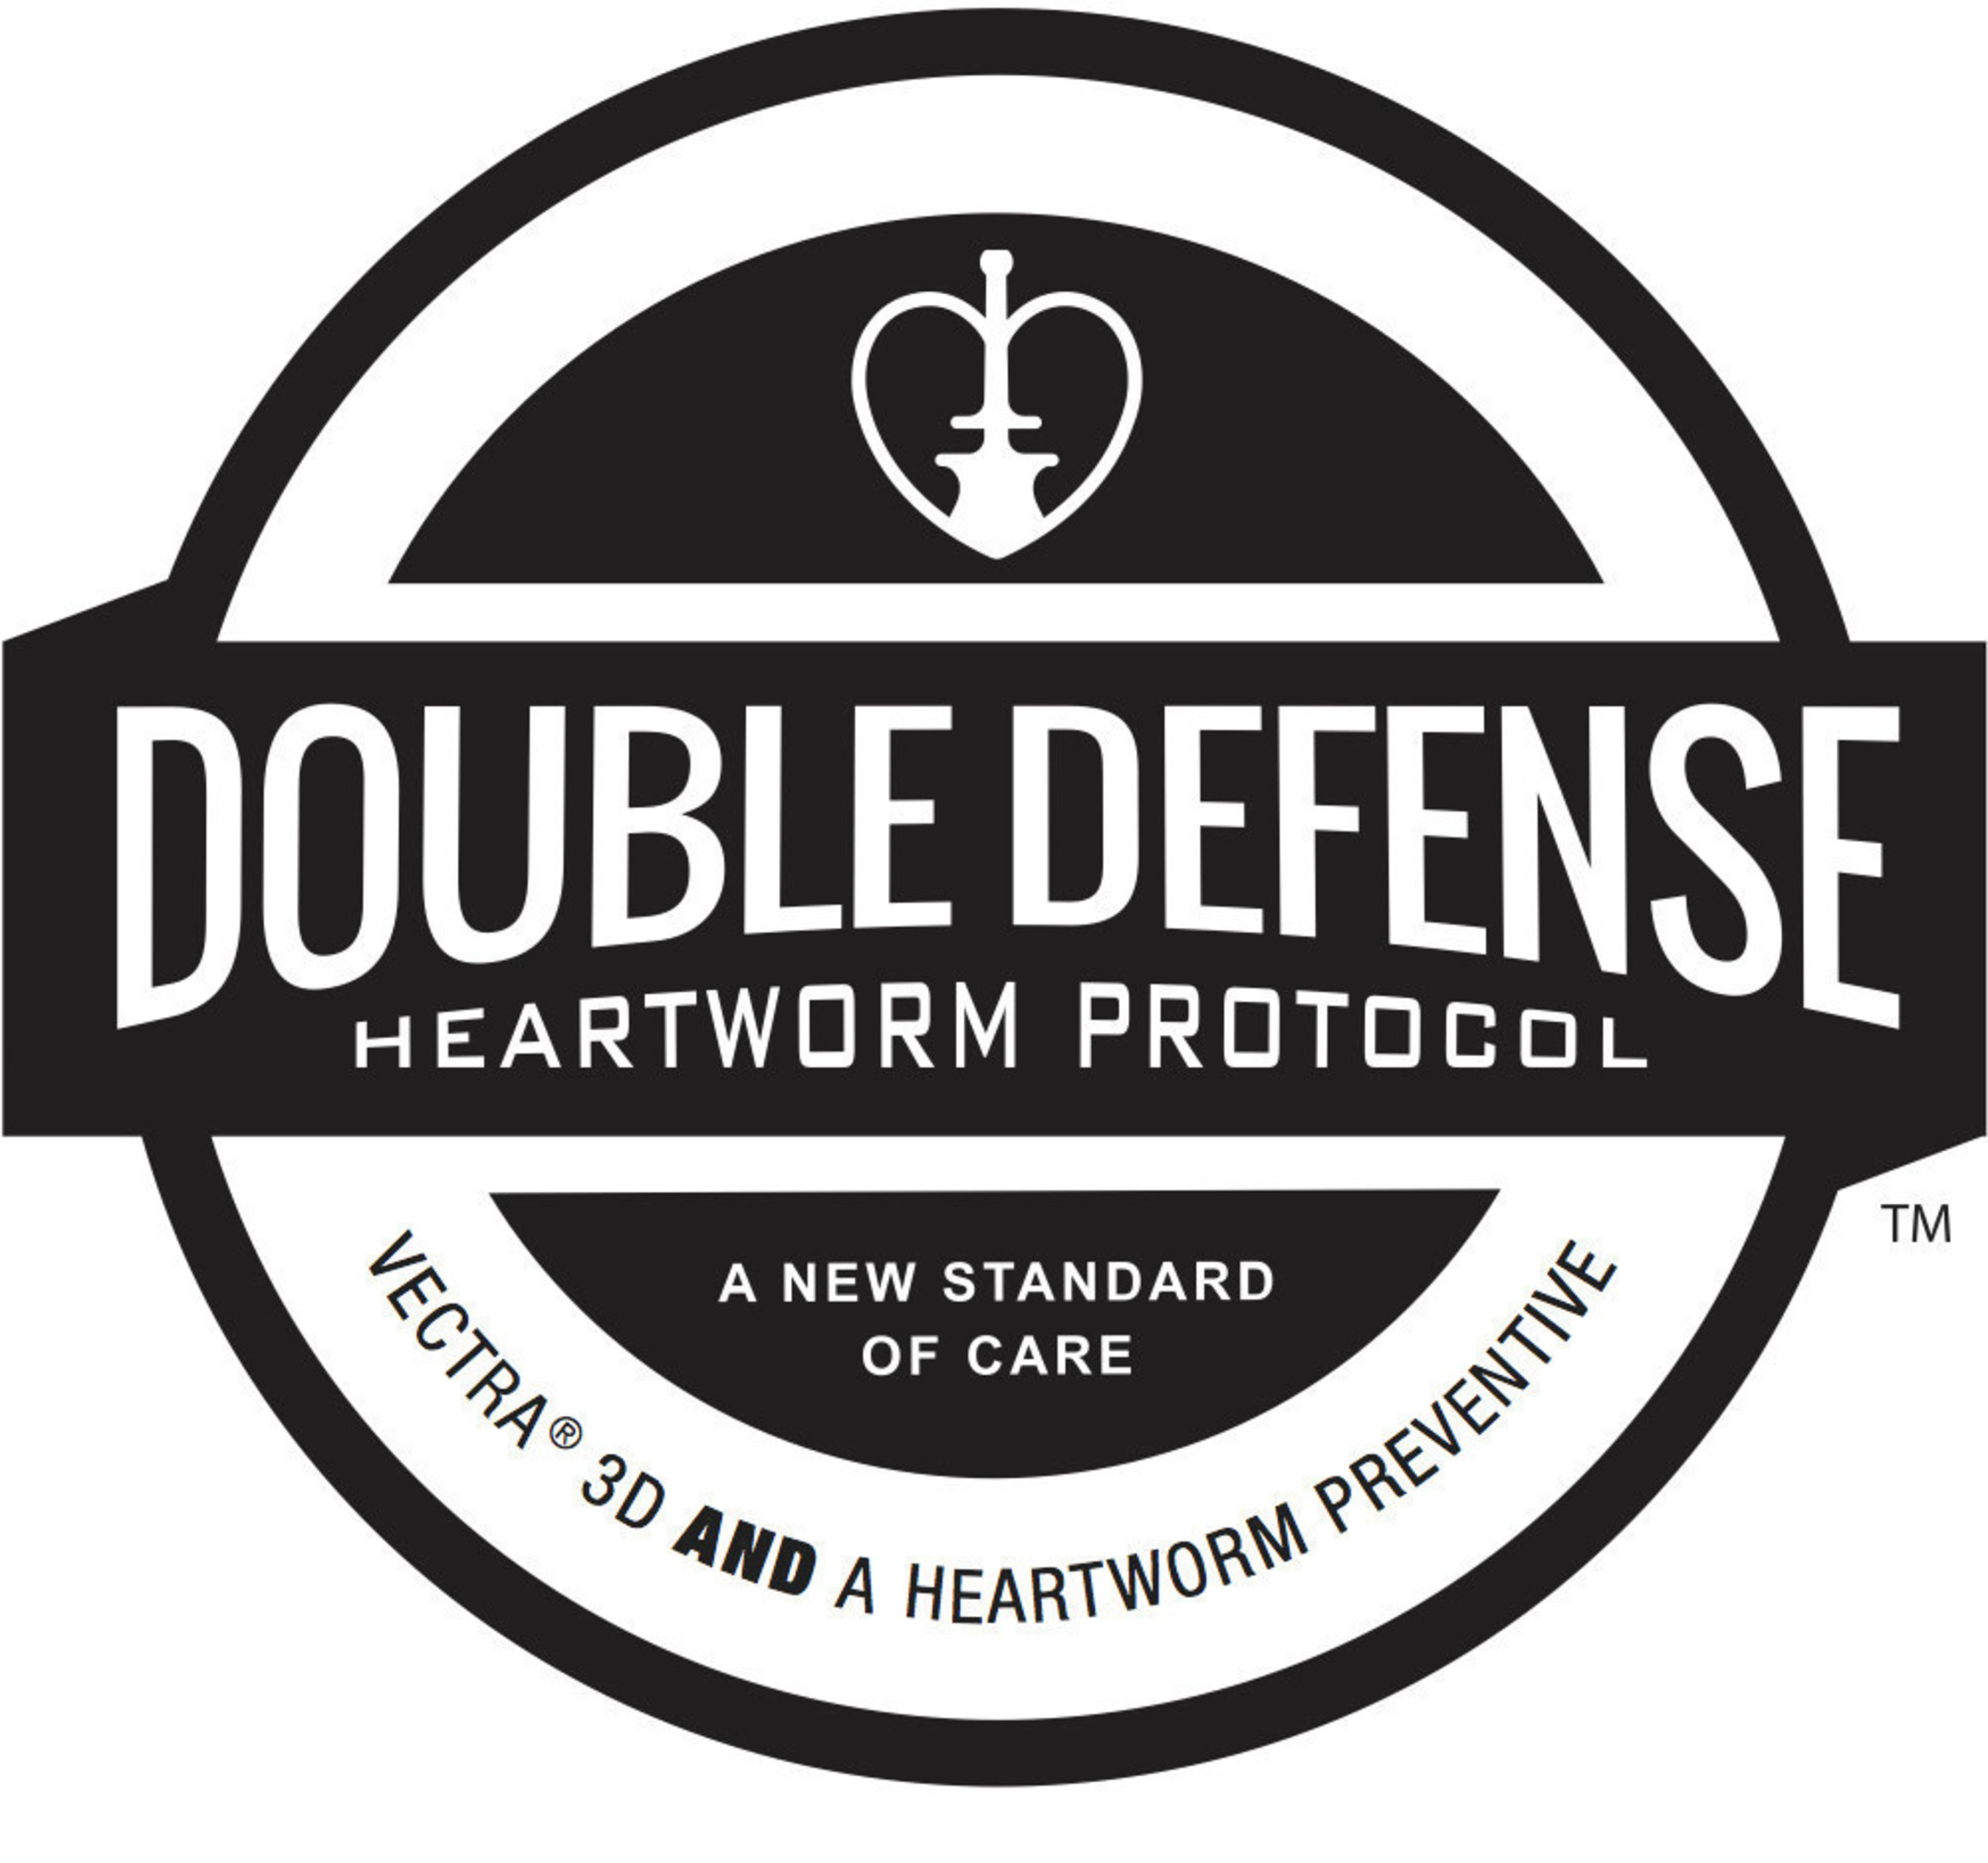 A new research study suggests a Double Defense protocol may protect your pet best from heartworms. Learn more at www.fightheartwormsnow.com